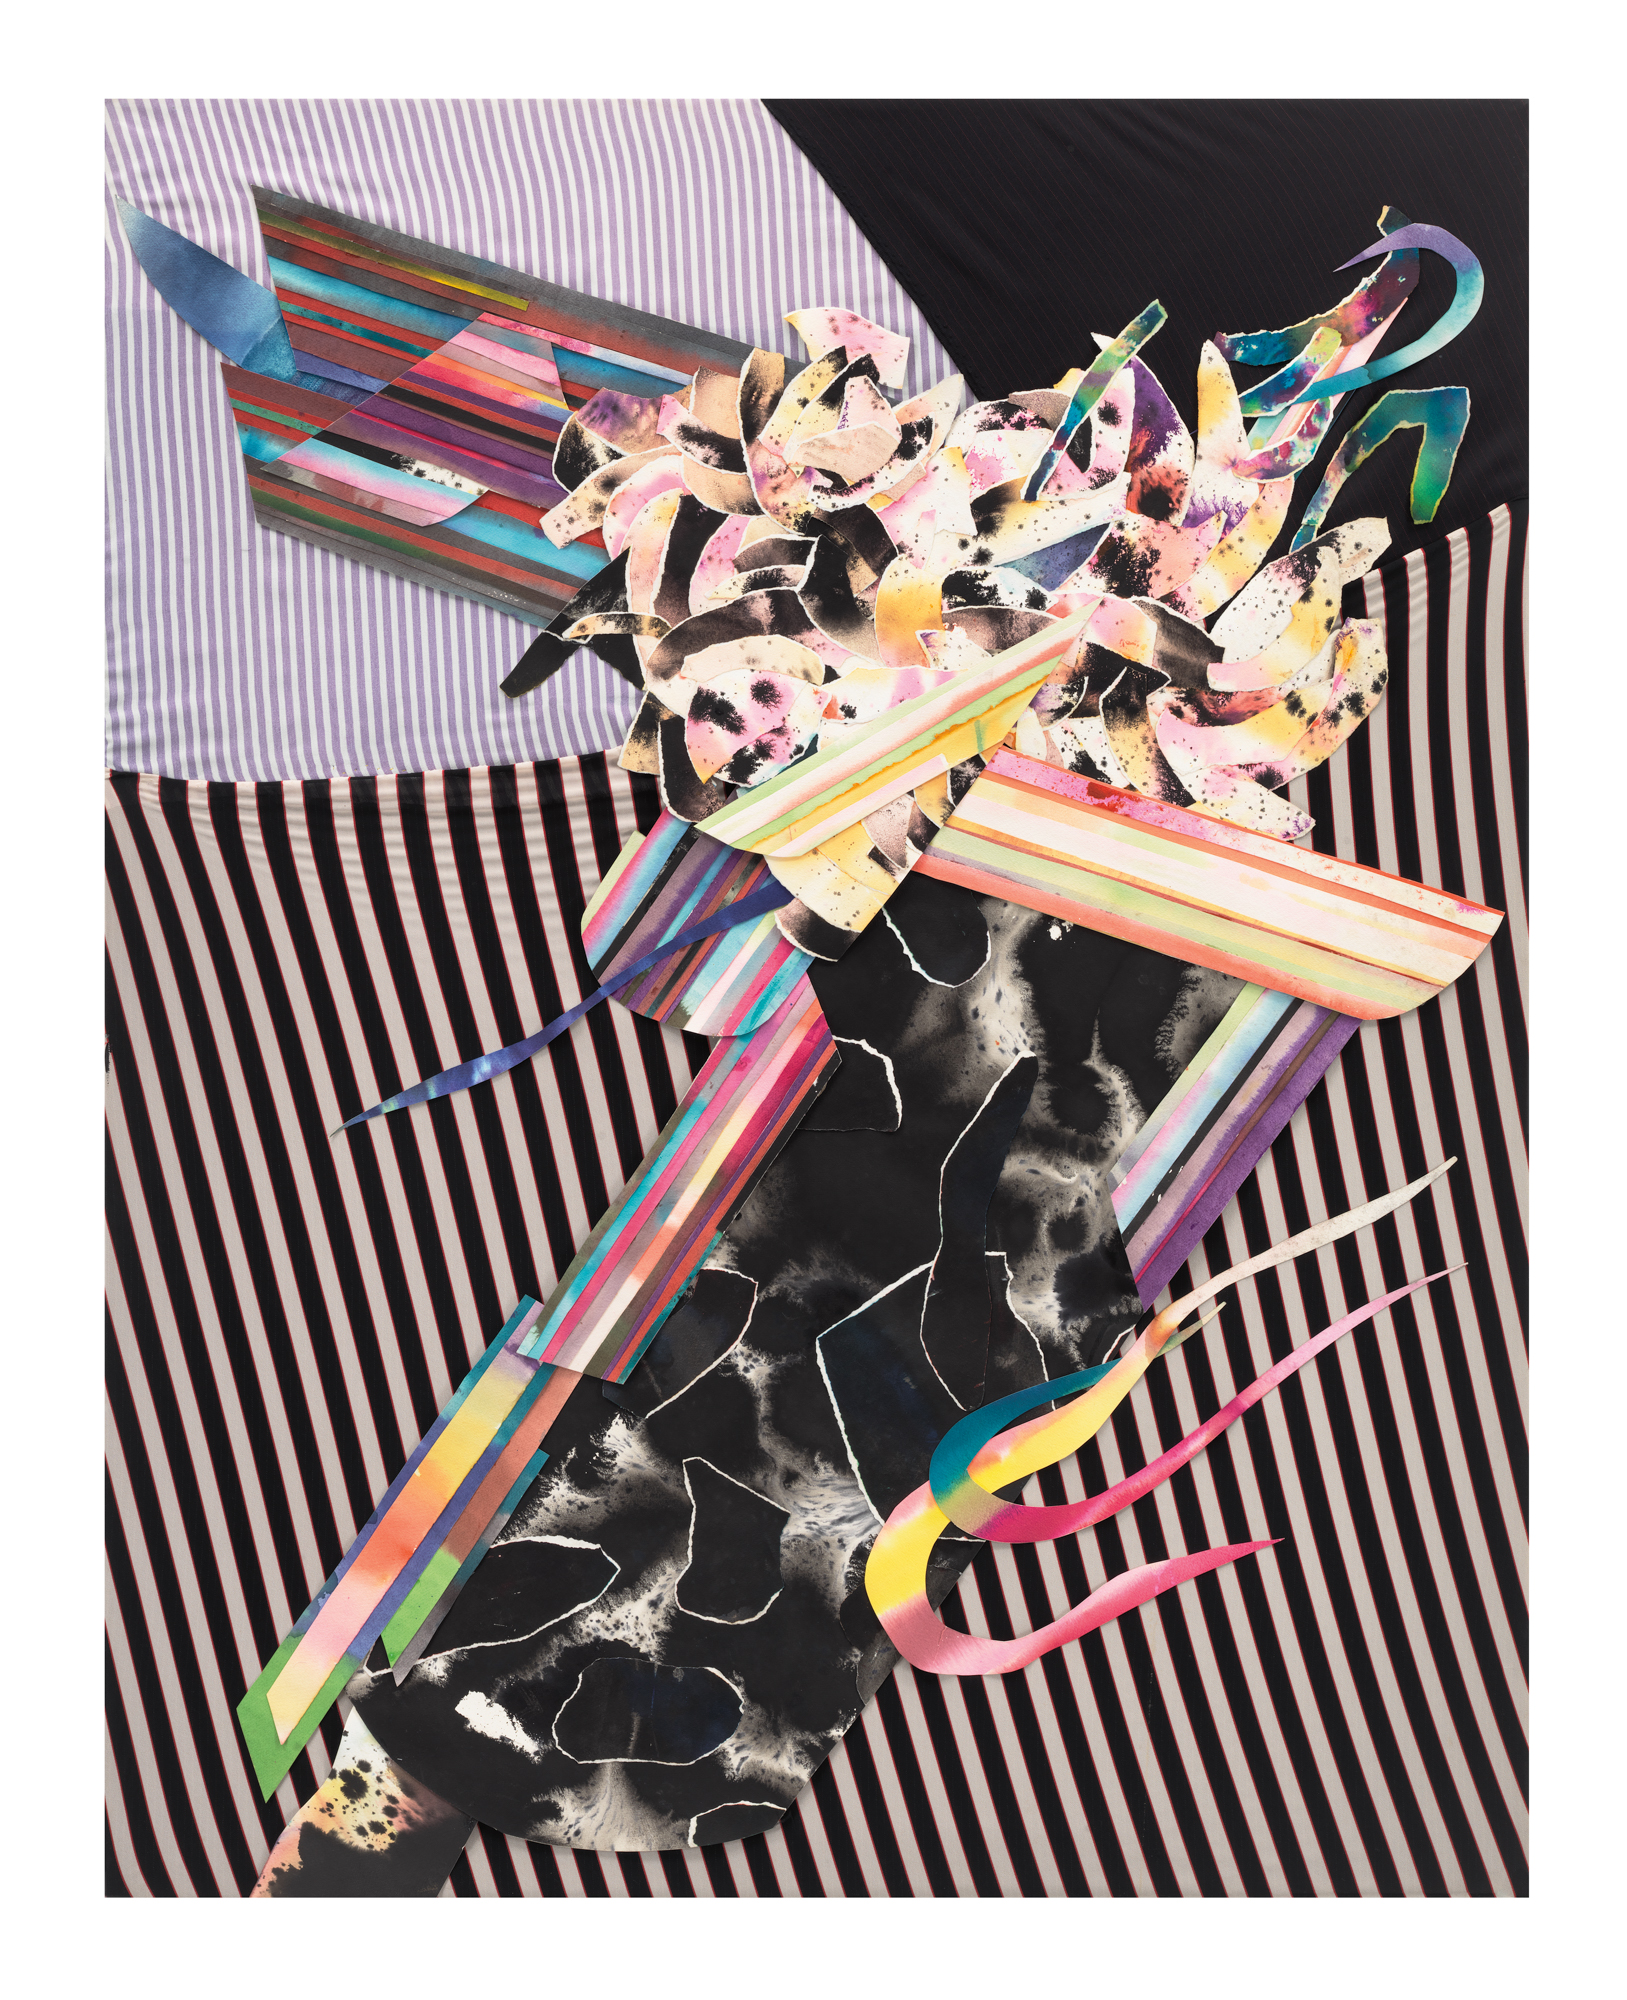 Al Loving, Untitled, 1982. Mixed media. 60 1/4 x 48 inches. Courtesy of the Estate of Al Loving and Garth Greenan Gallery, New York.